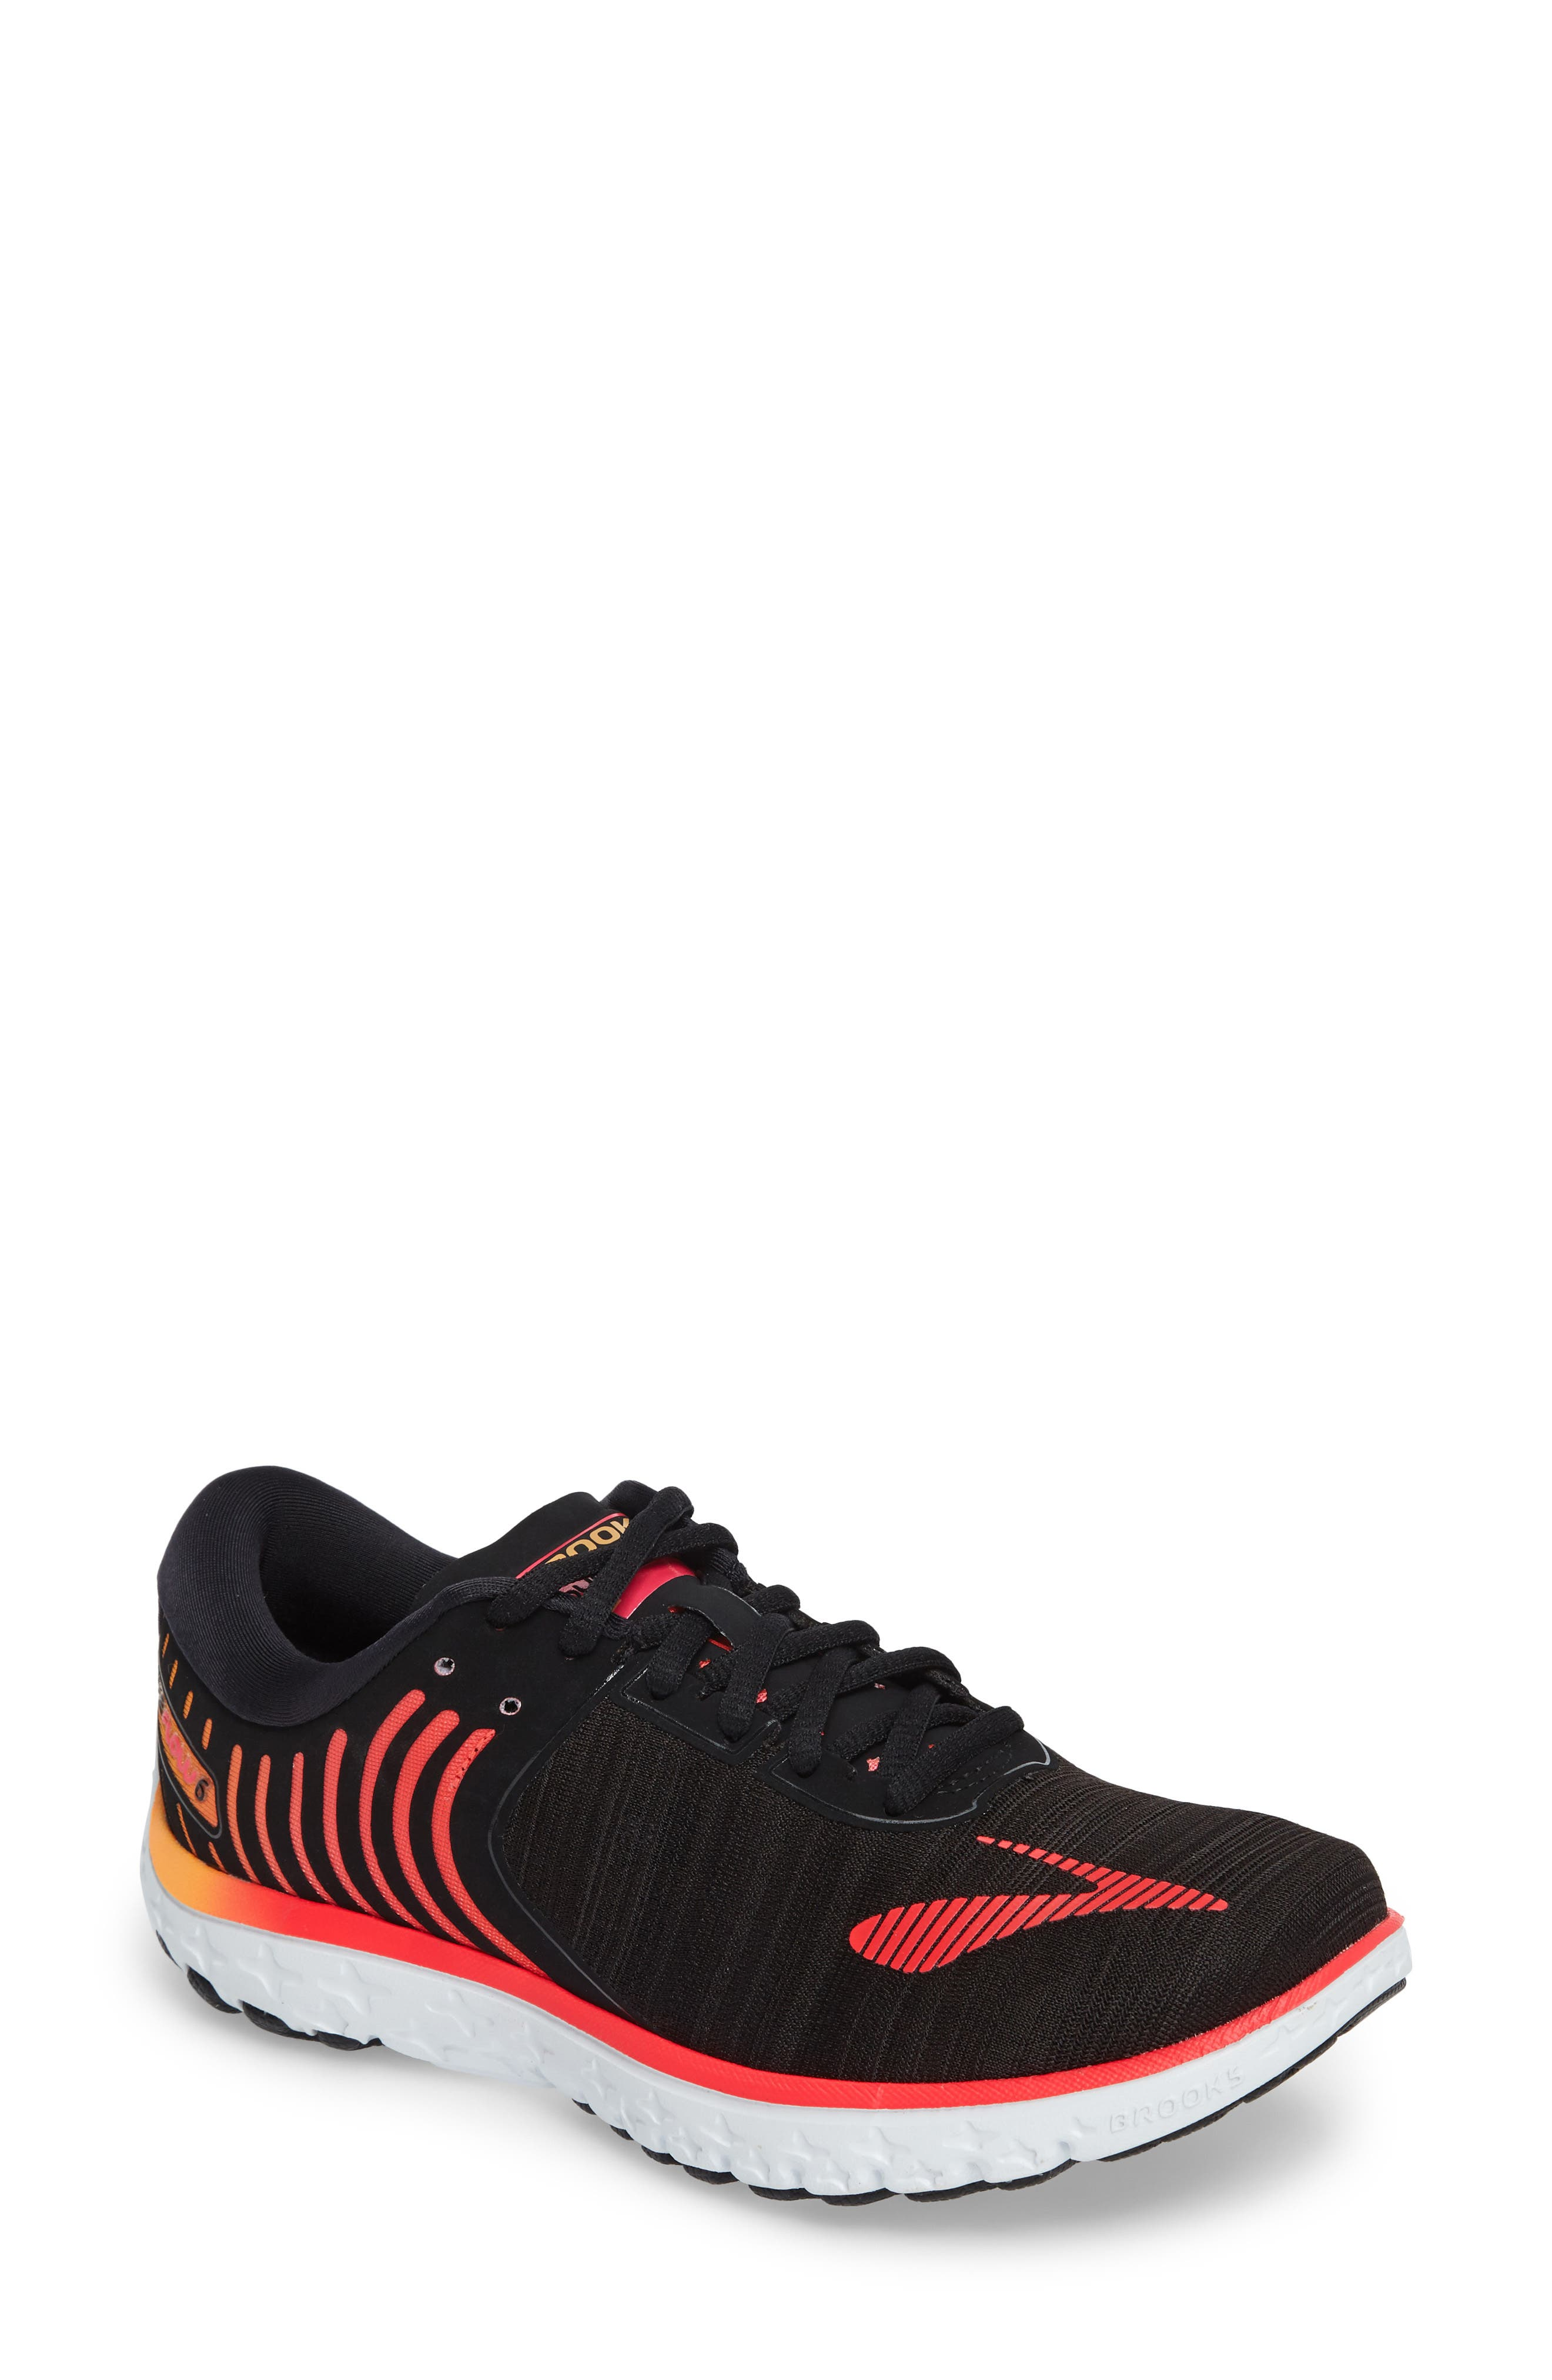 BROOKS PureFlow 6 Running Shoe